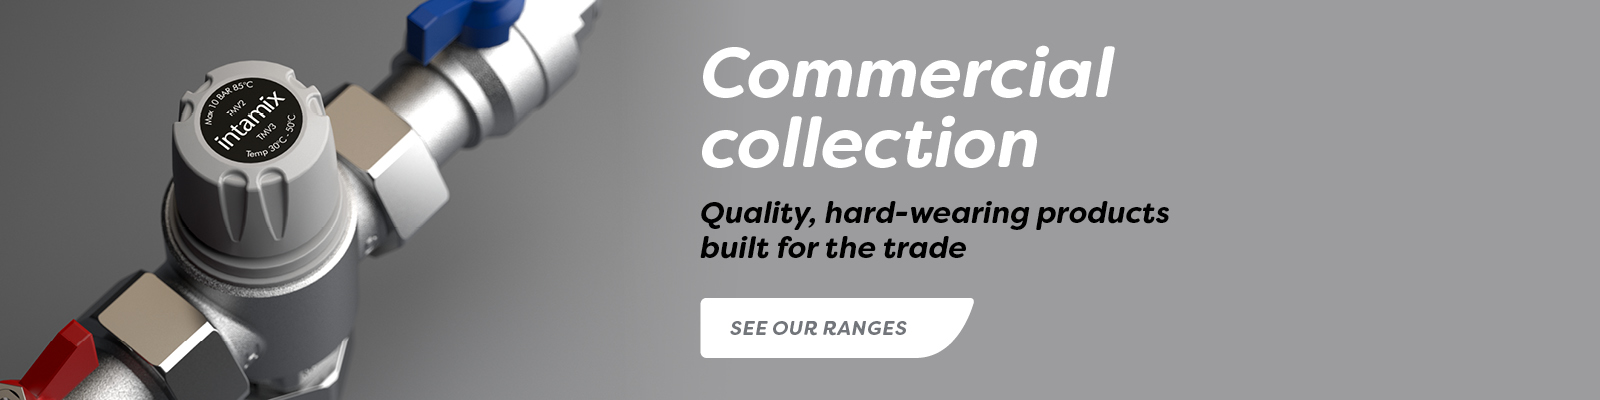 Commercial collection, Quality, hard-wearing products built for the trade